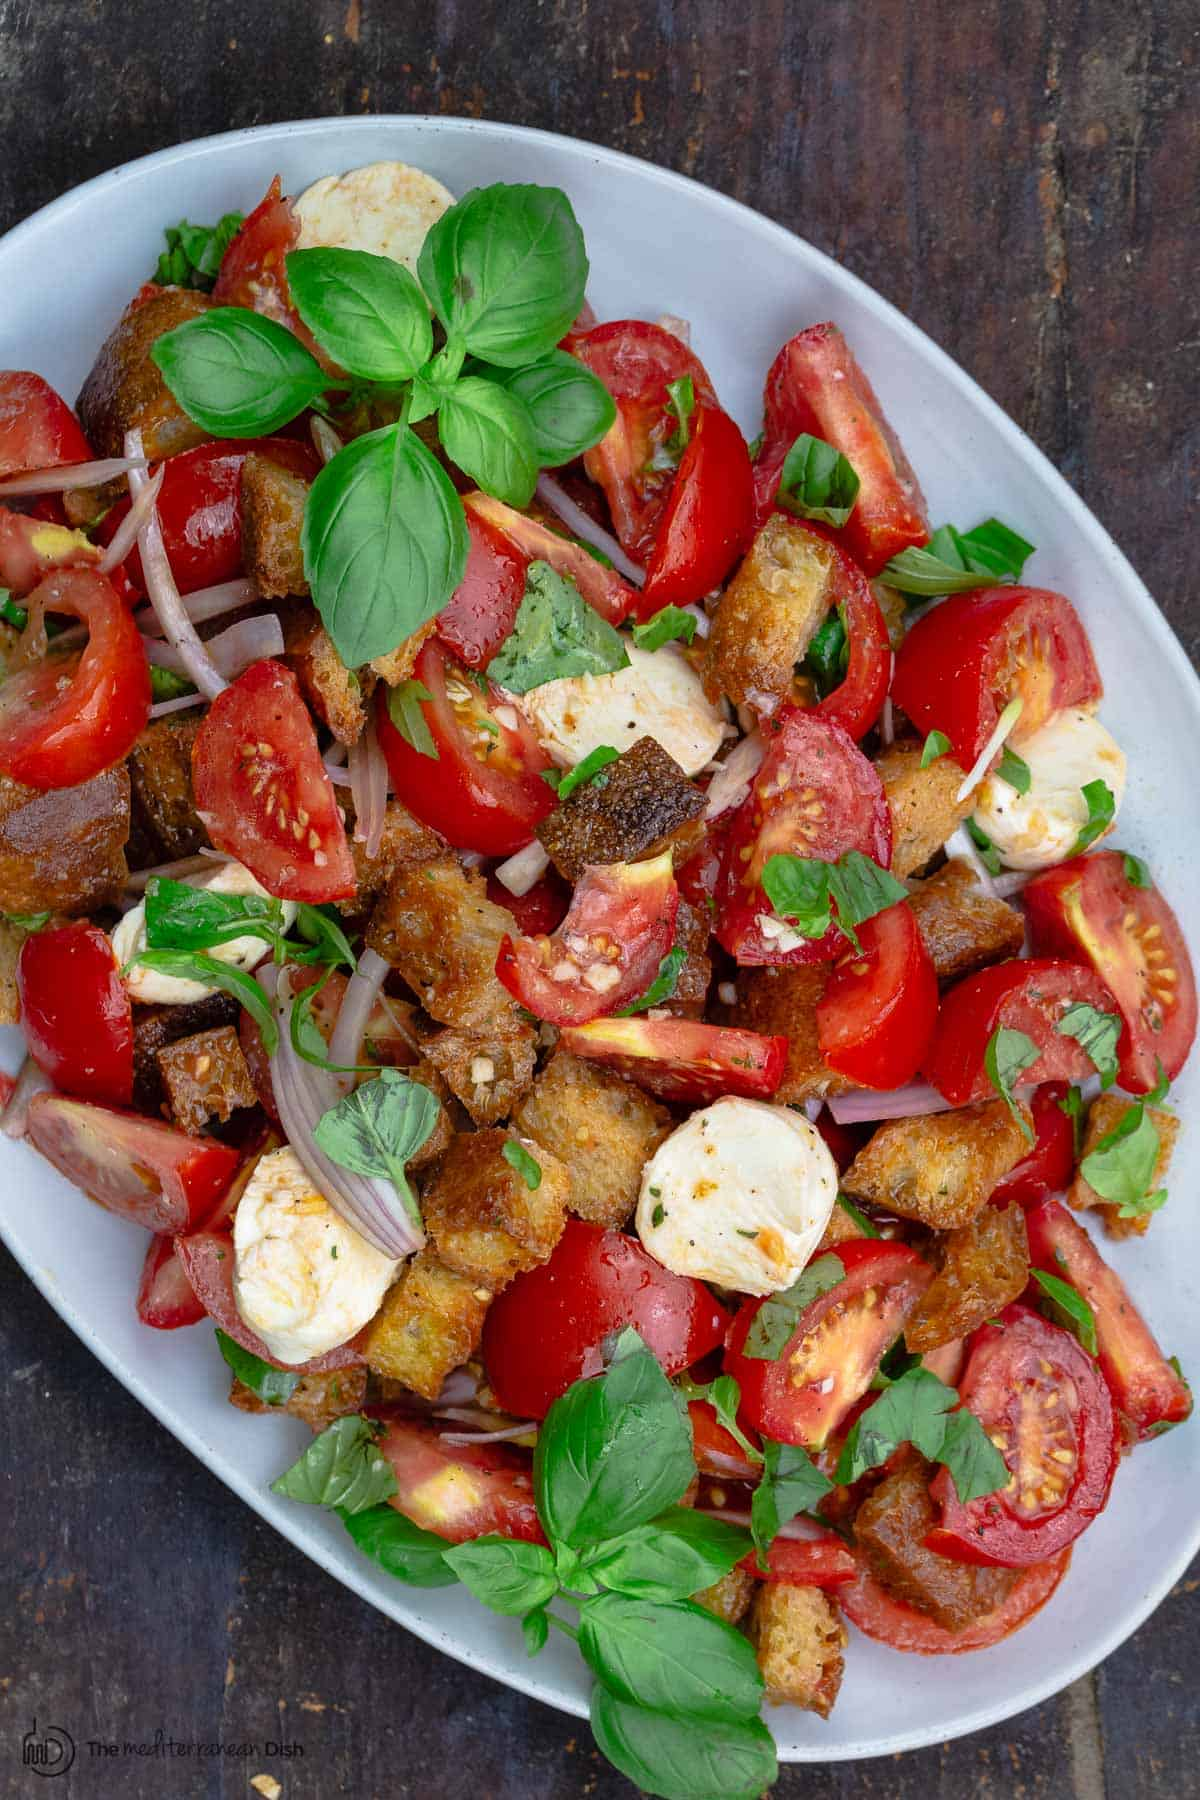 Simple Tomato Panzanella Salad The Mediterranean Dish